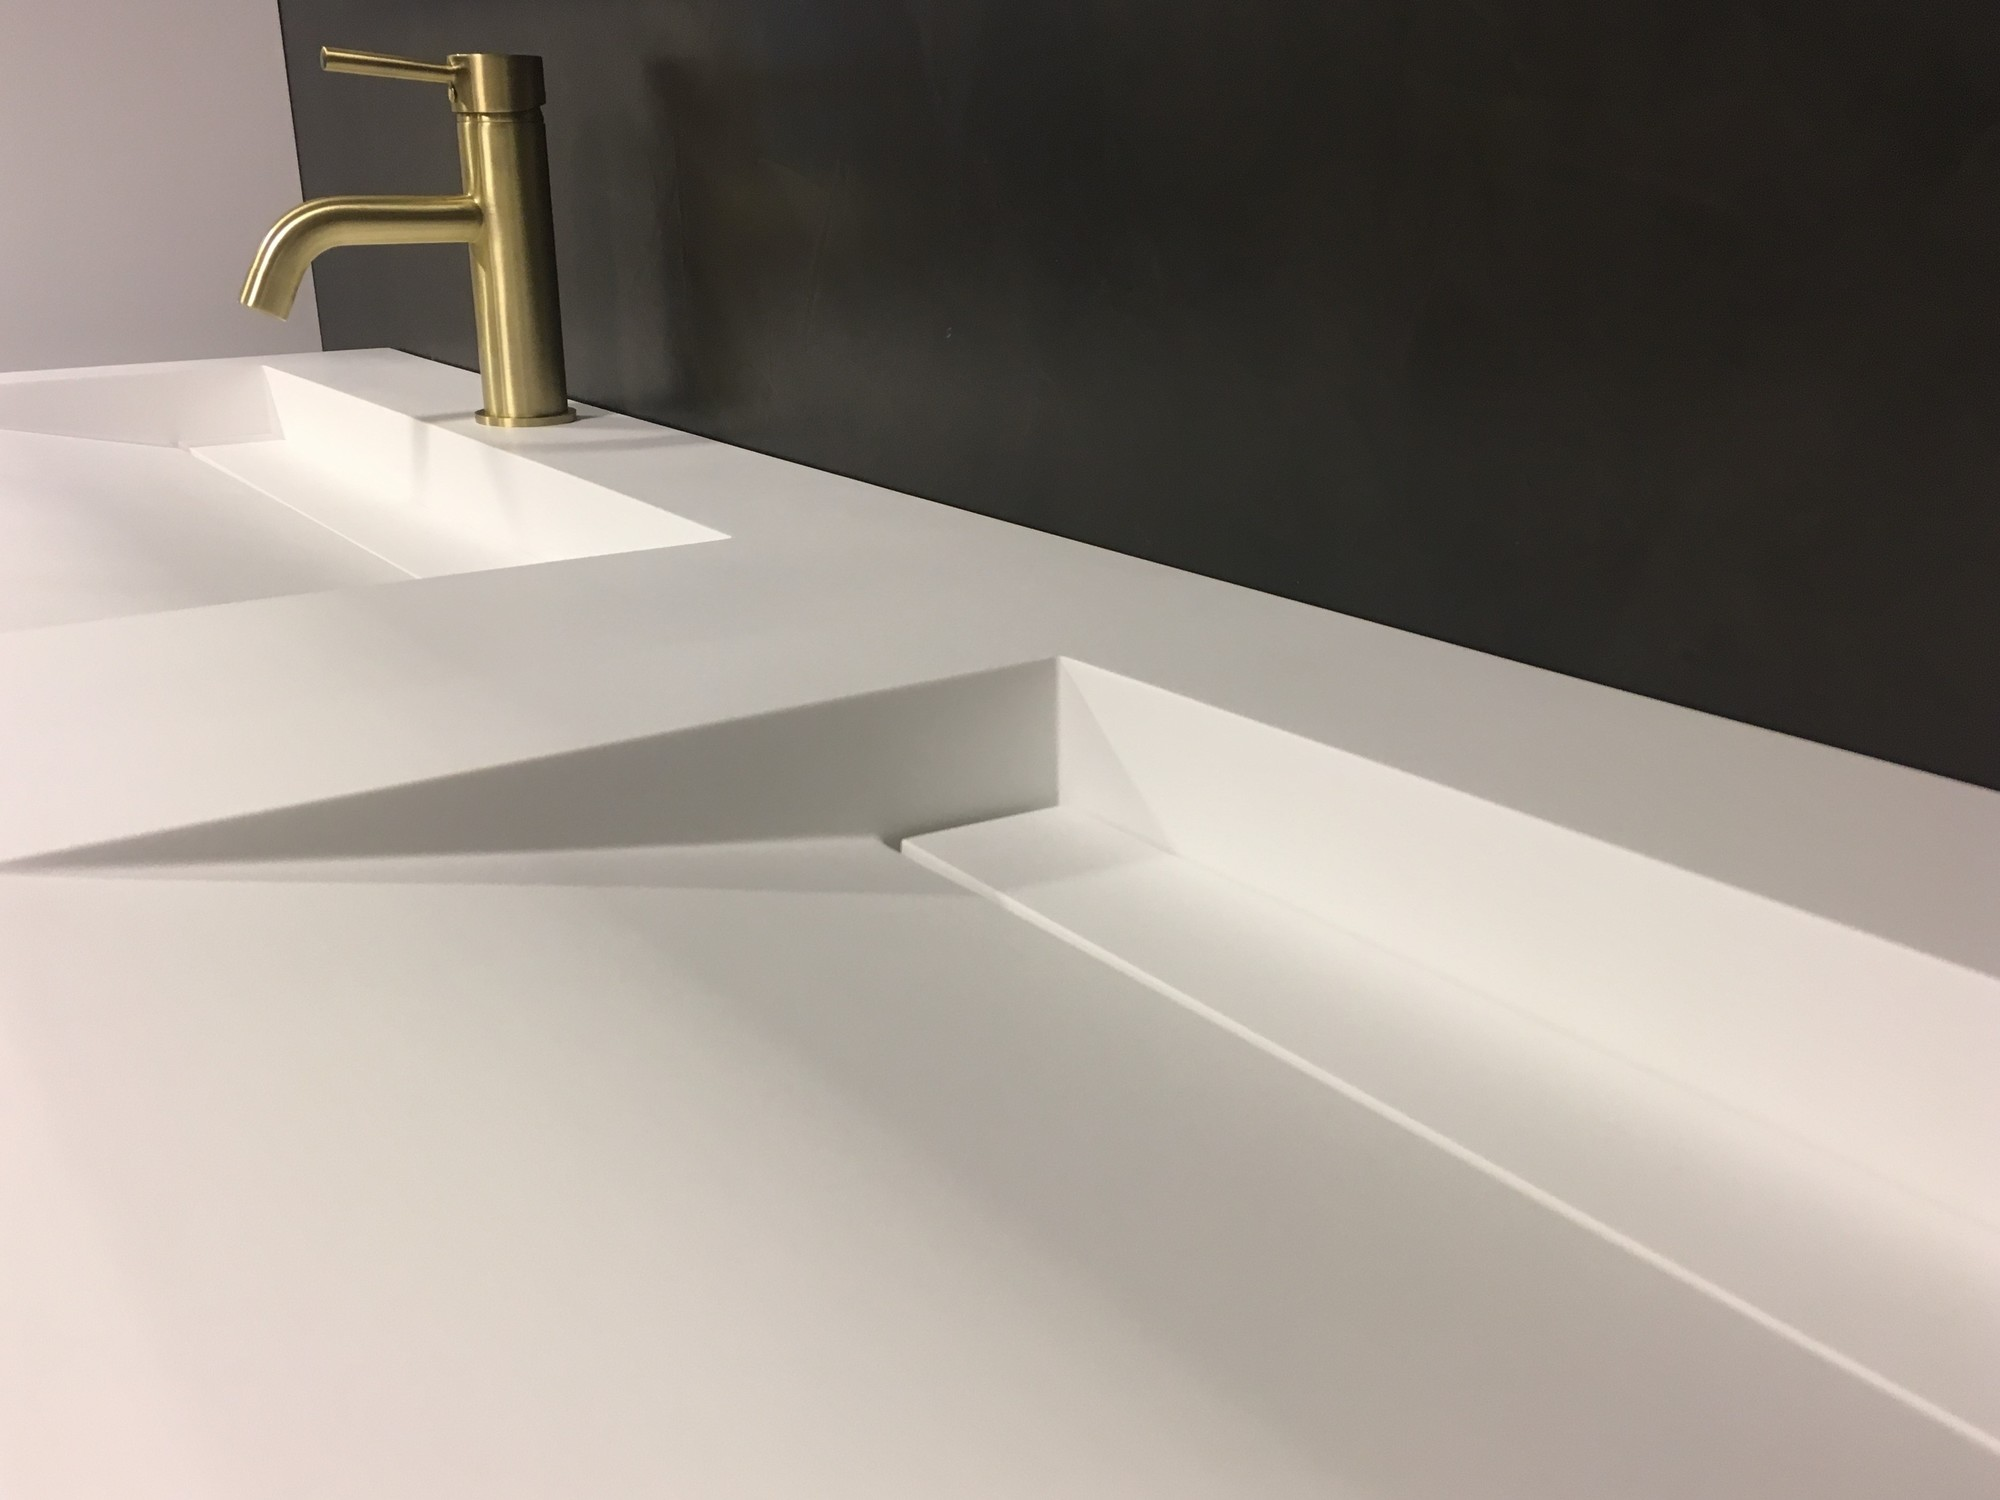 Solid Surface Wastafel : Solid surface wastafel solid cascate